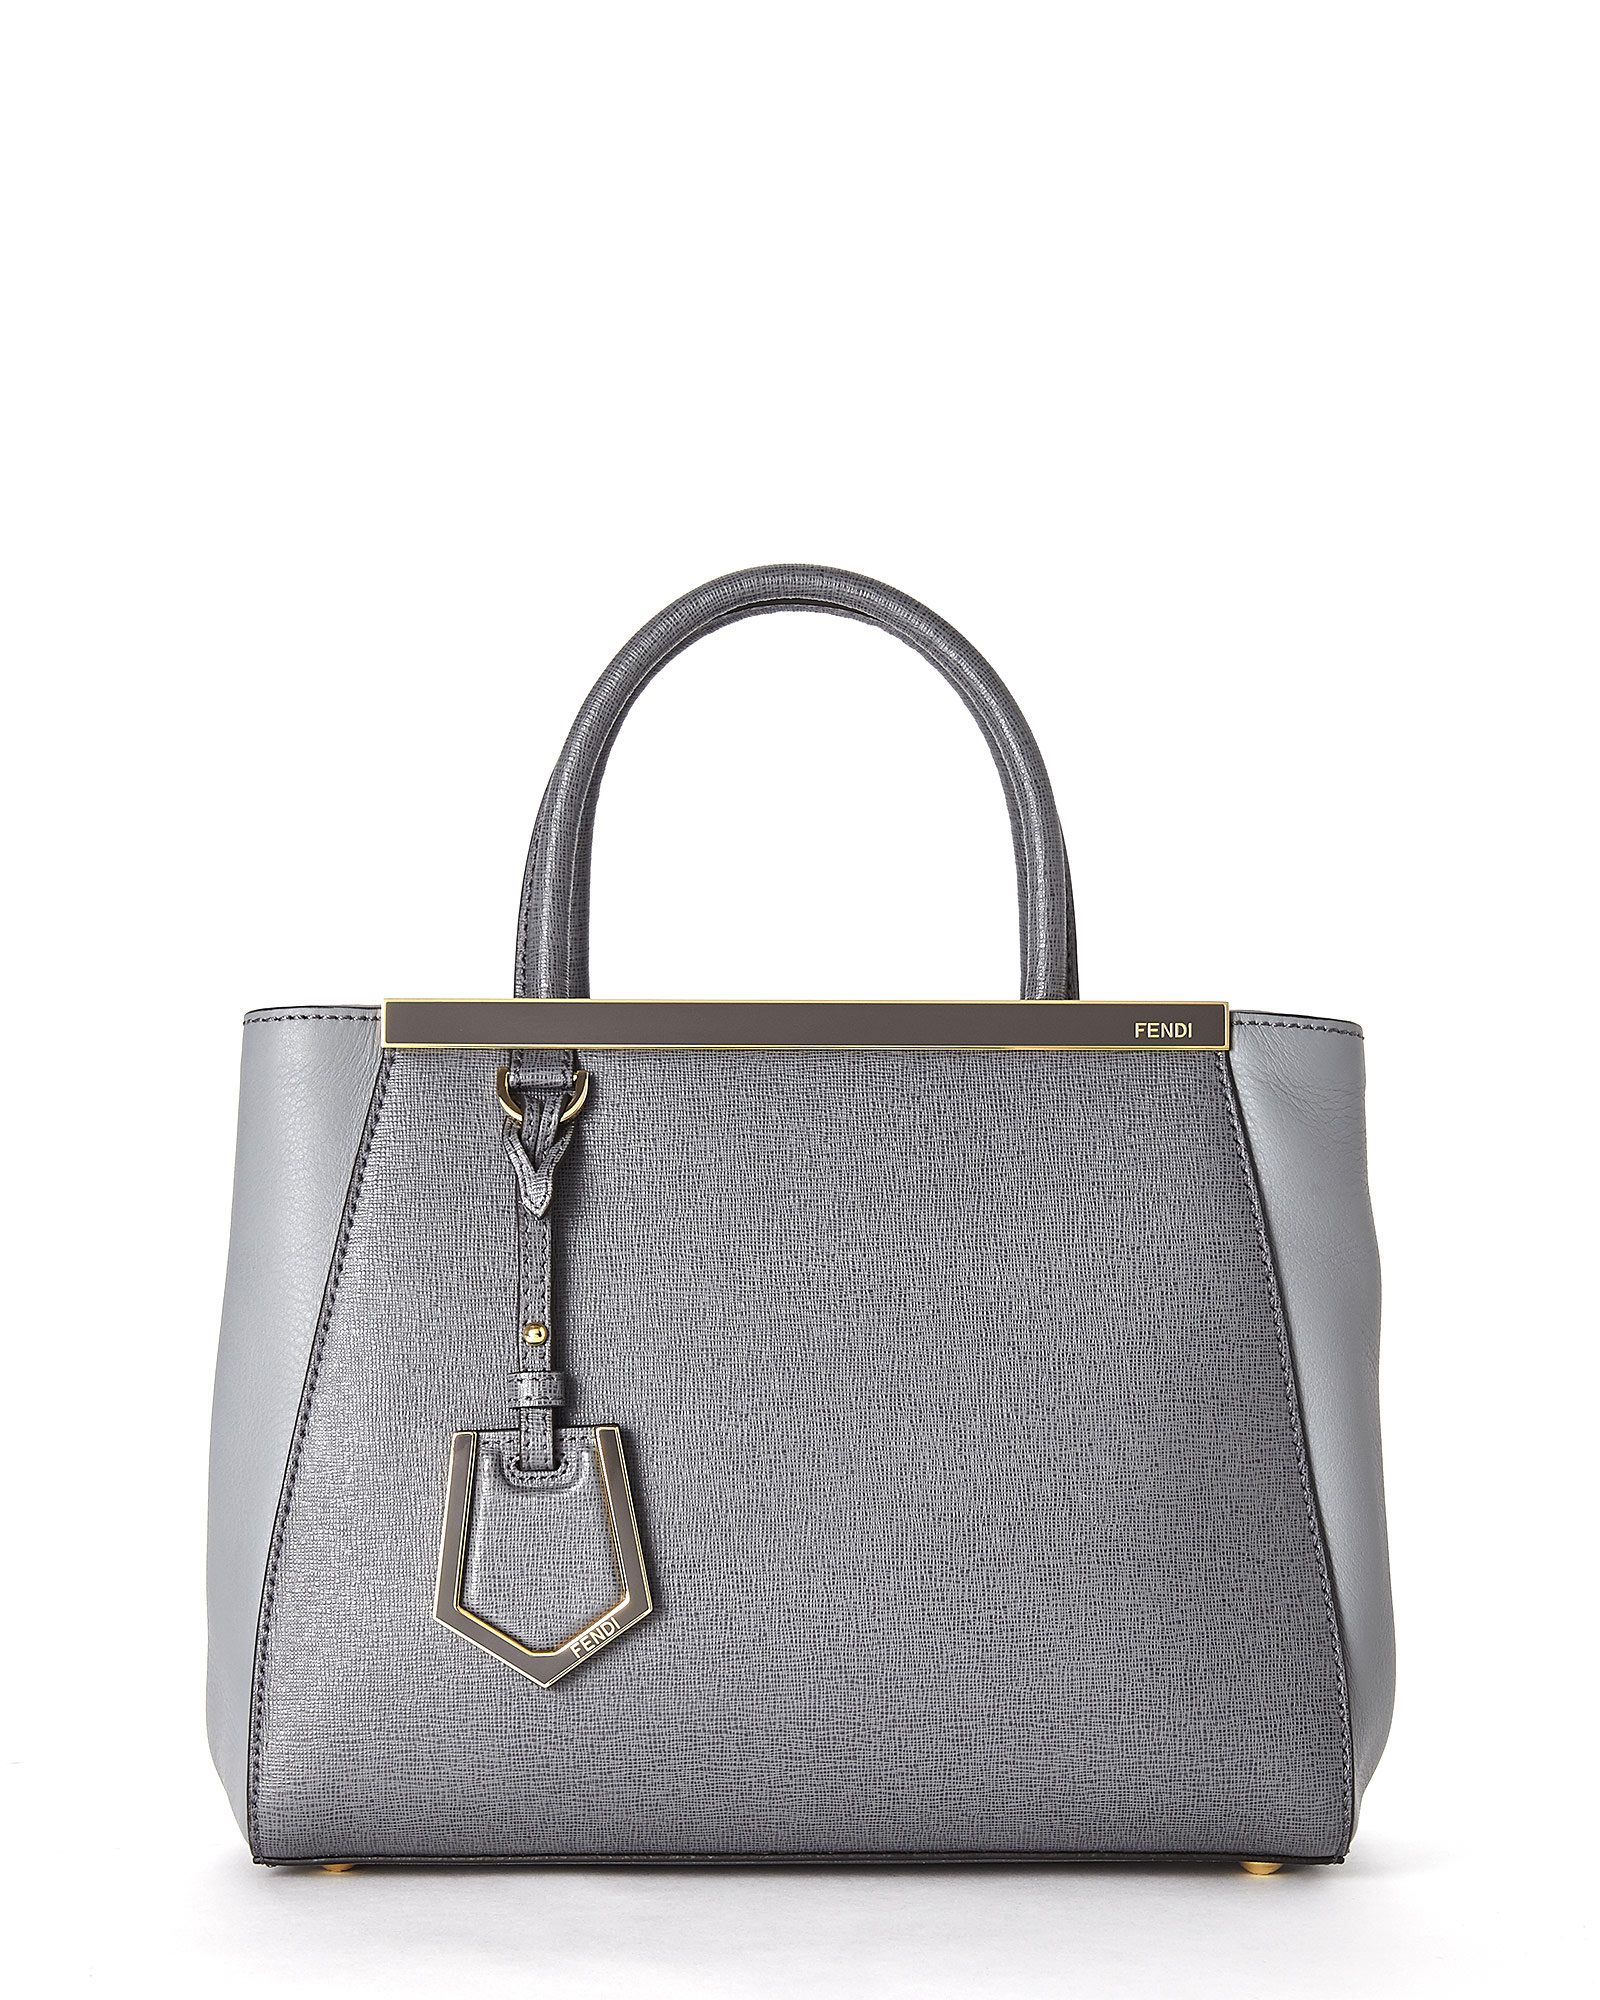 33862bfc1afe Lyst - Fendi Grey Petite 2Jours Tote in Gray